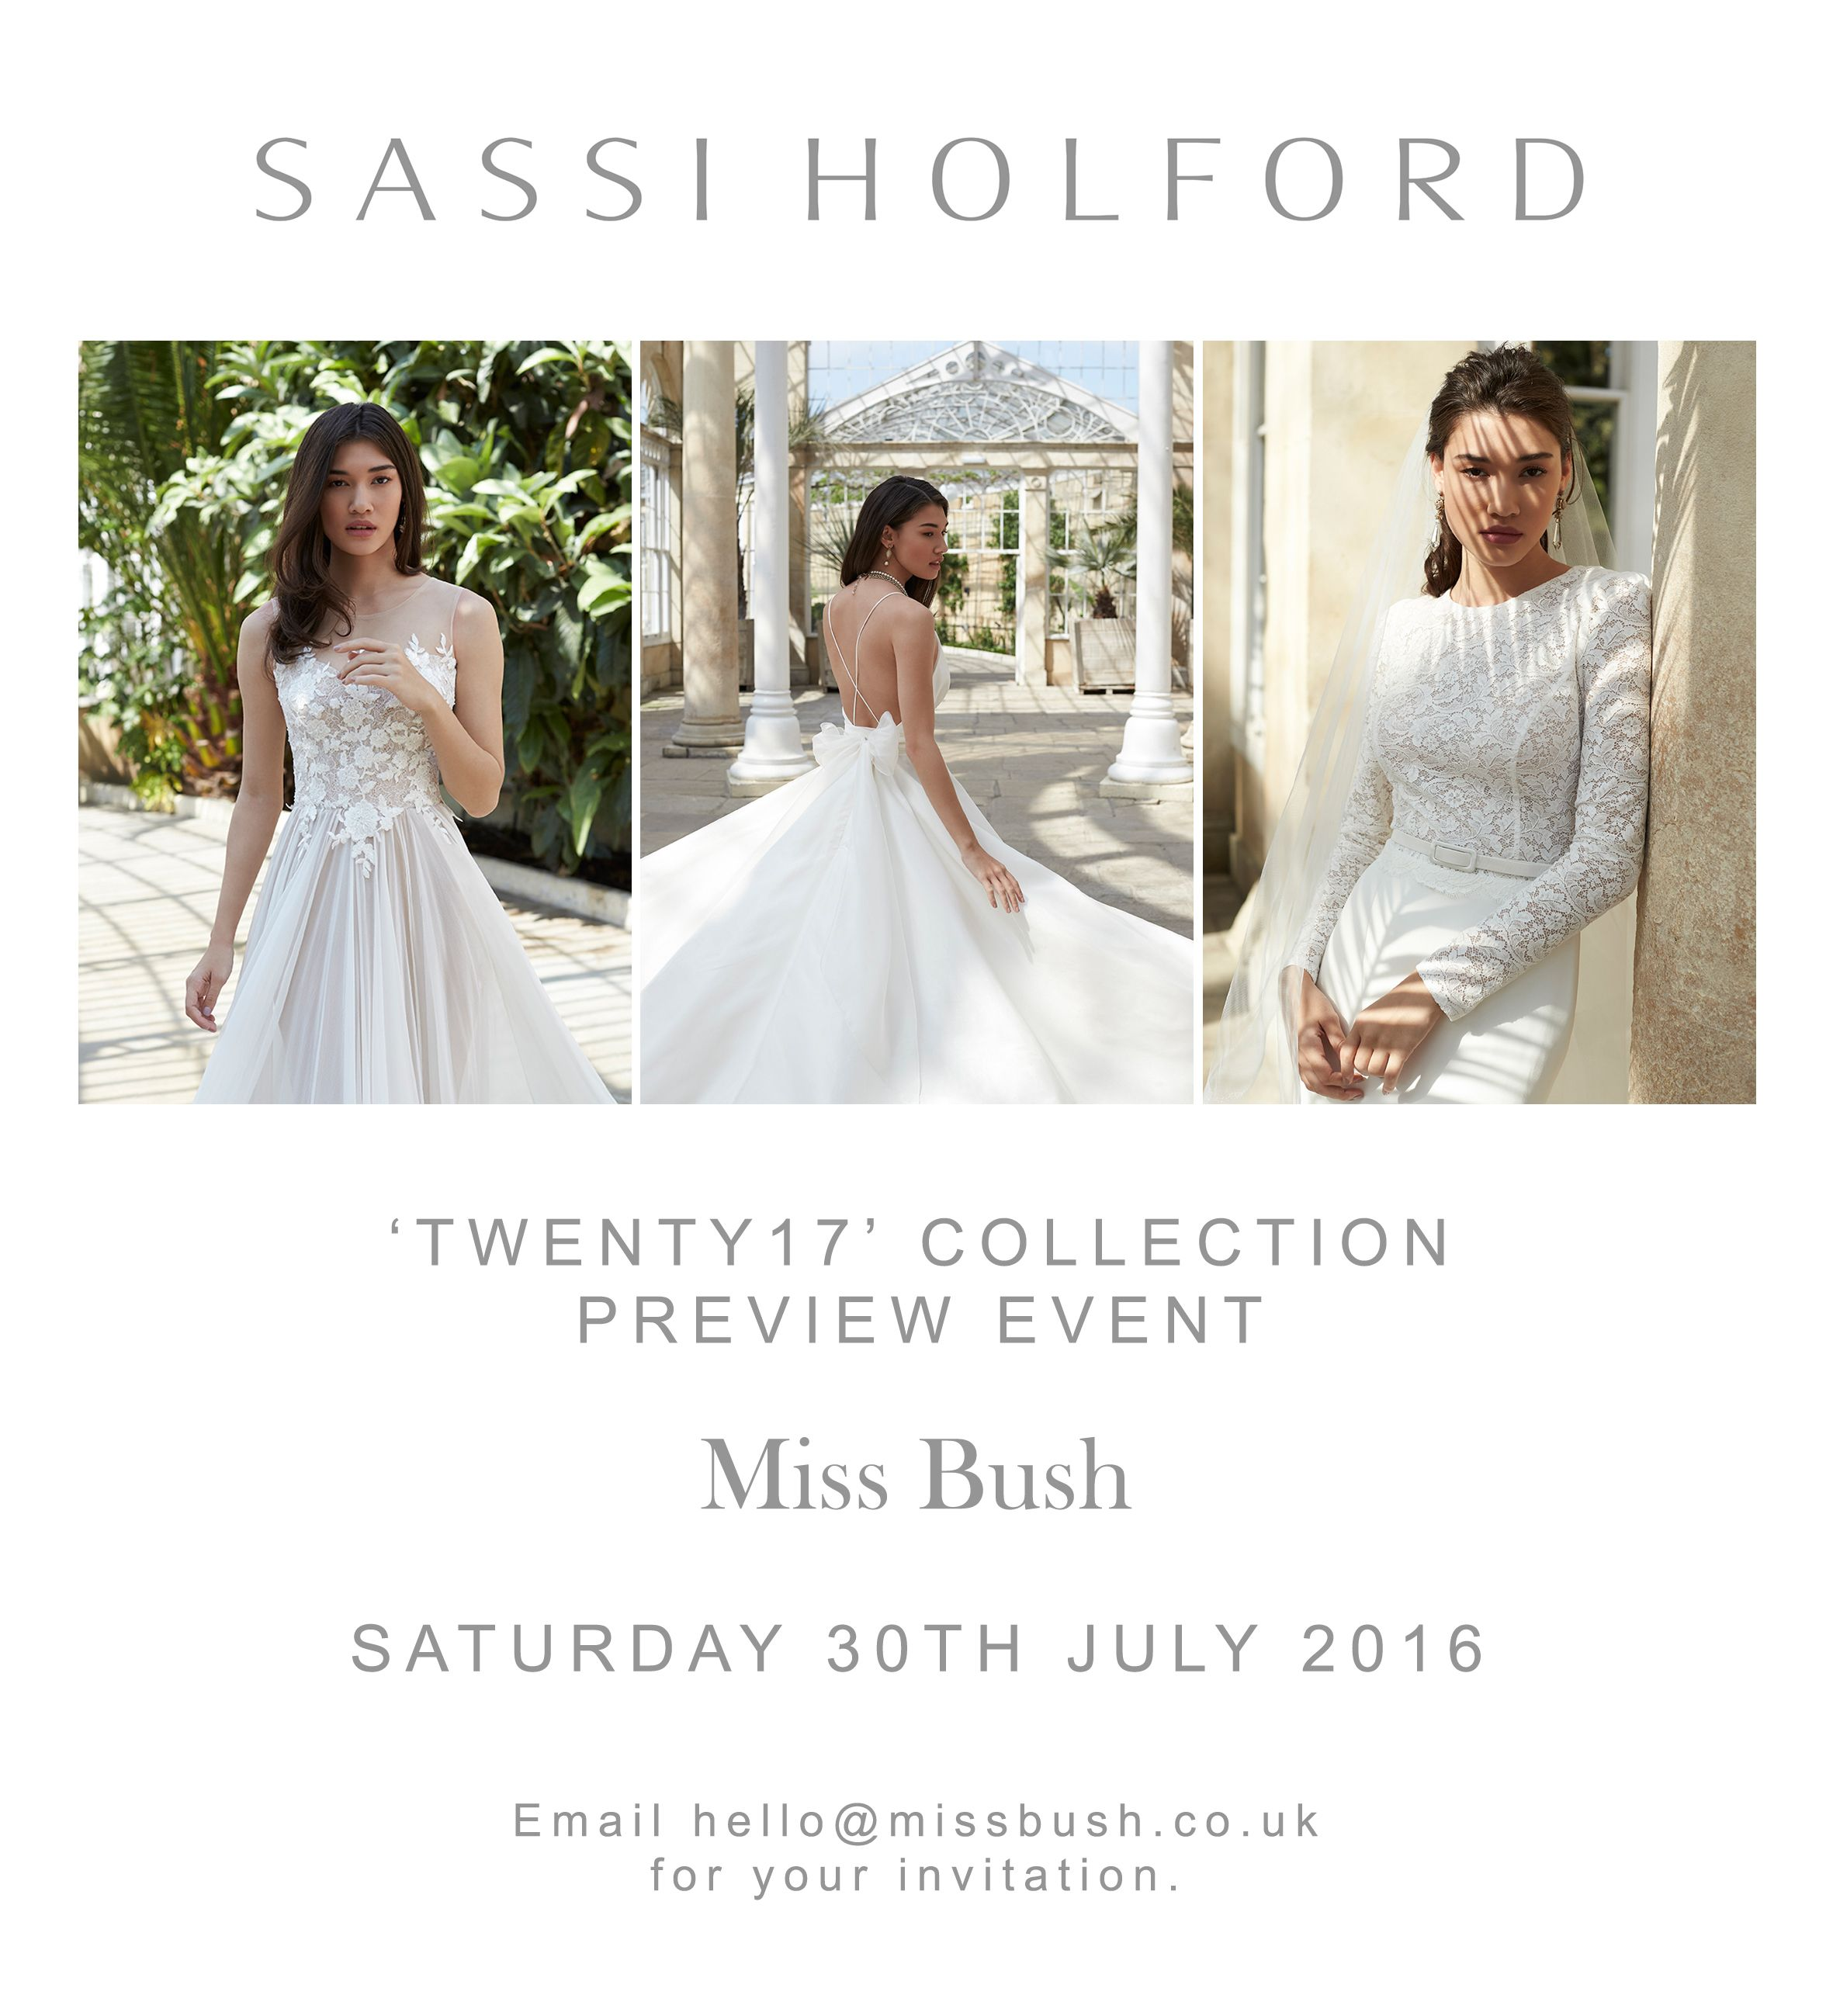 Details about our Sassi Holford Preview Event on 30th July ...